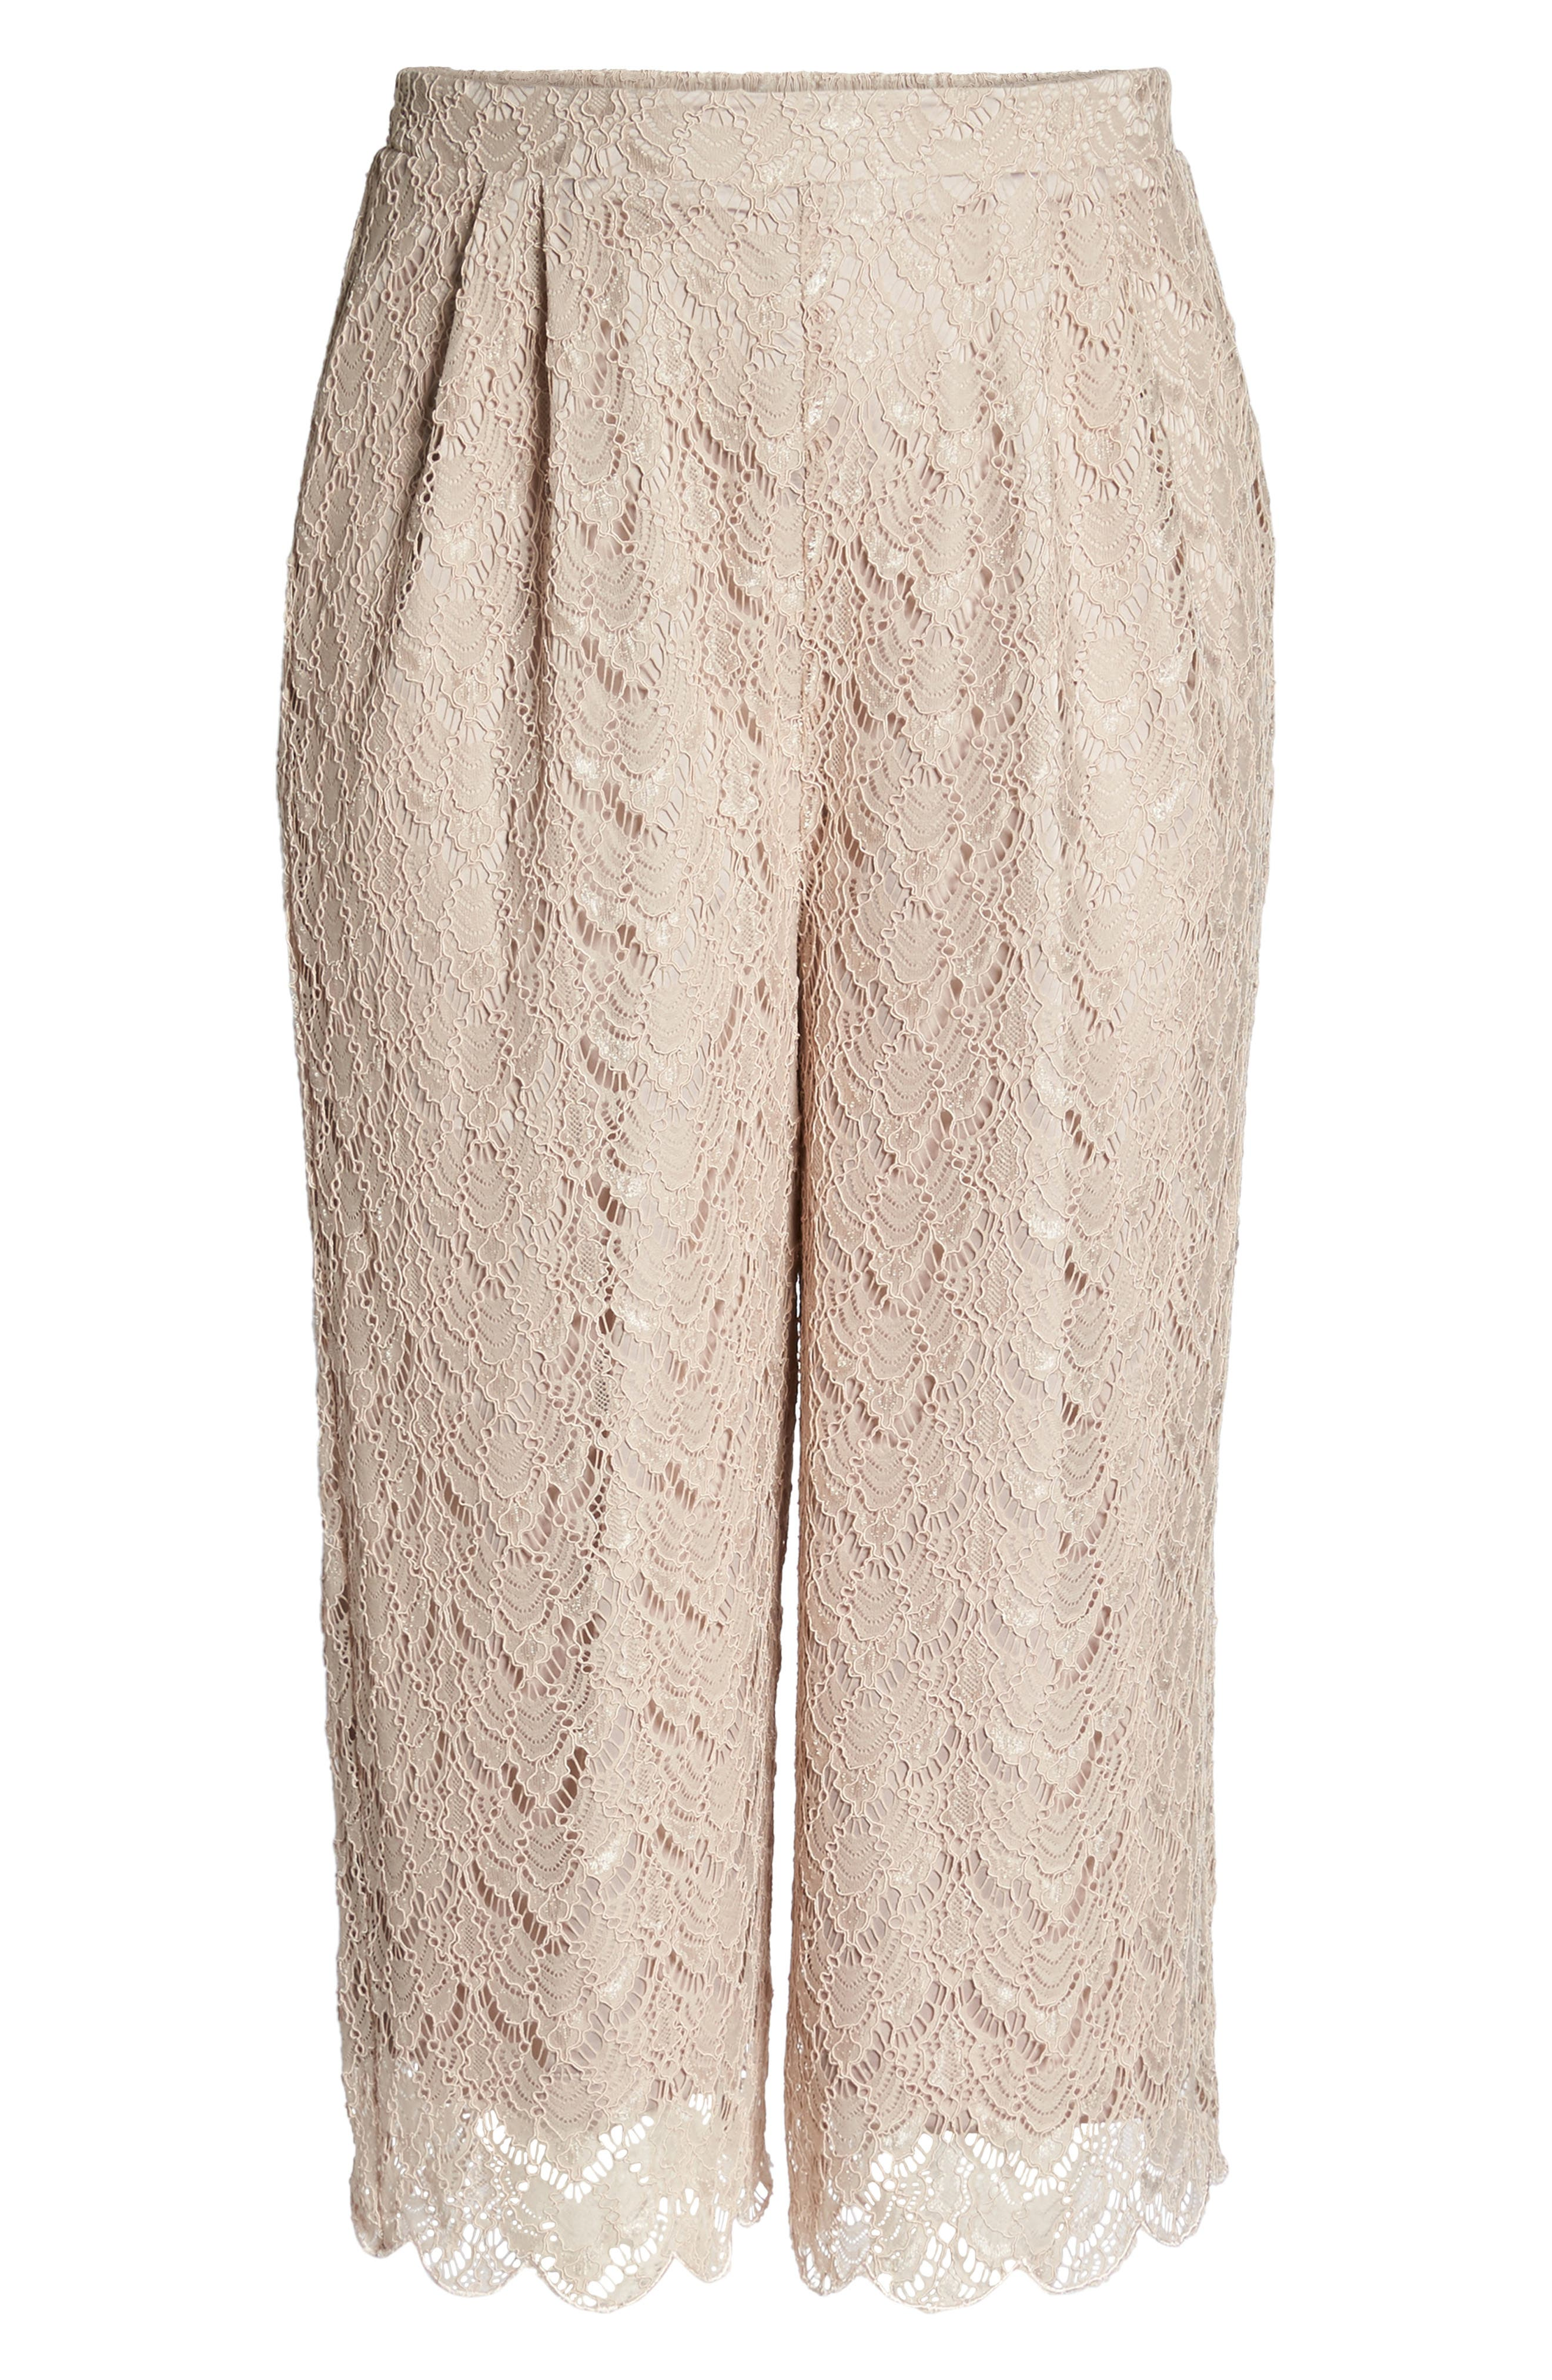 Lace Culottes,                             Alternate thumbnail 6, color,                             Nude